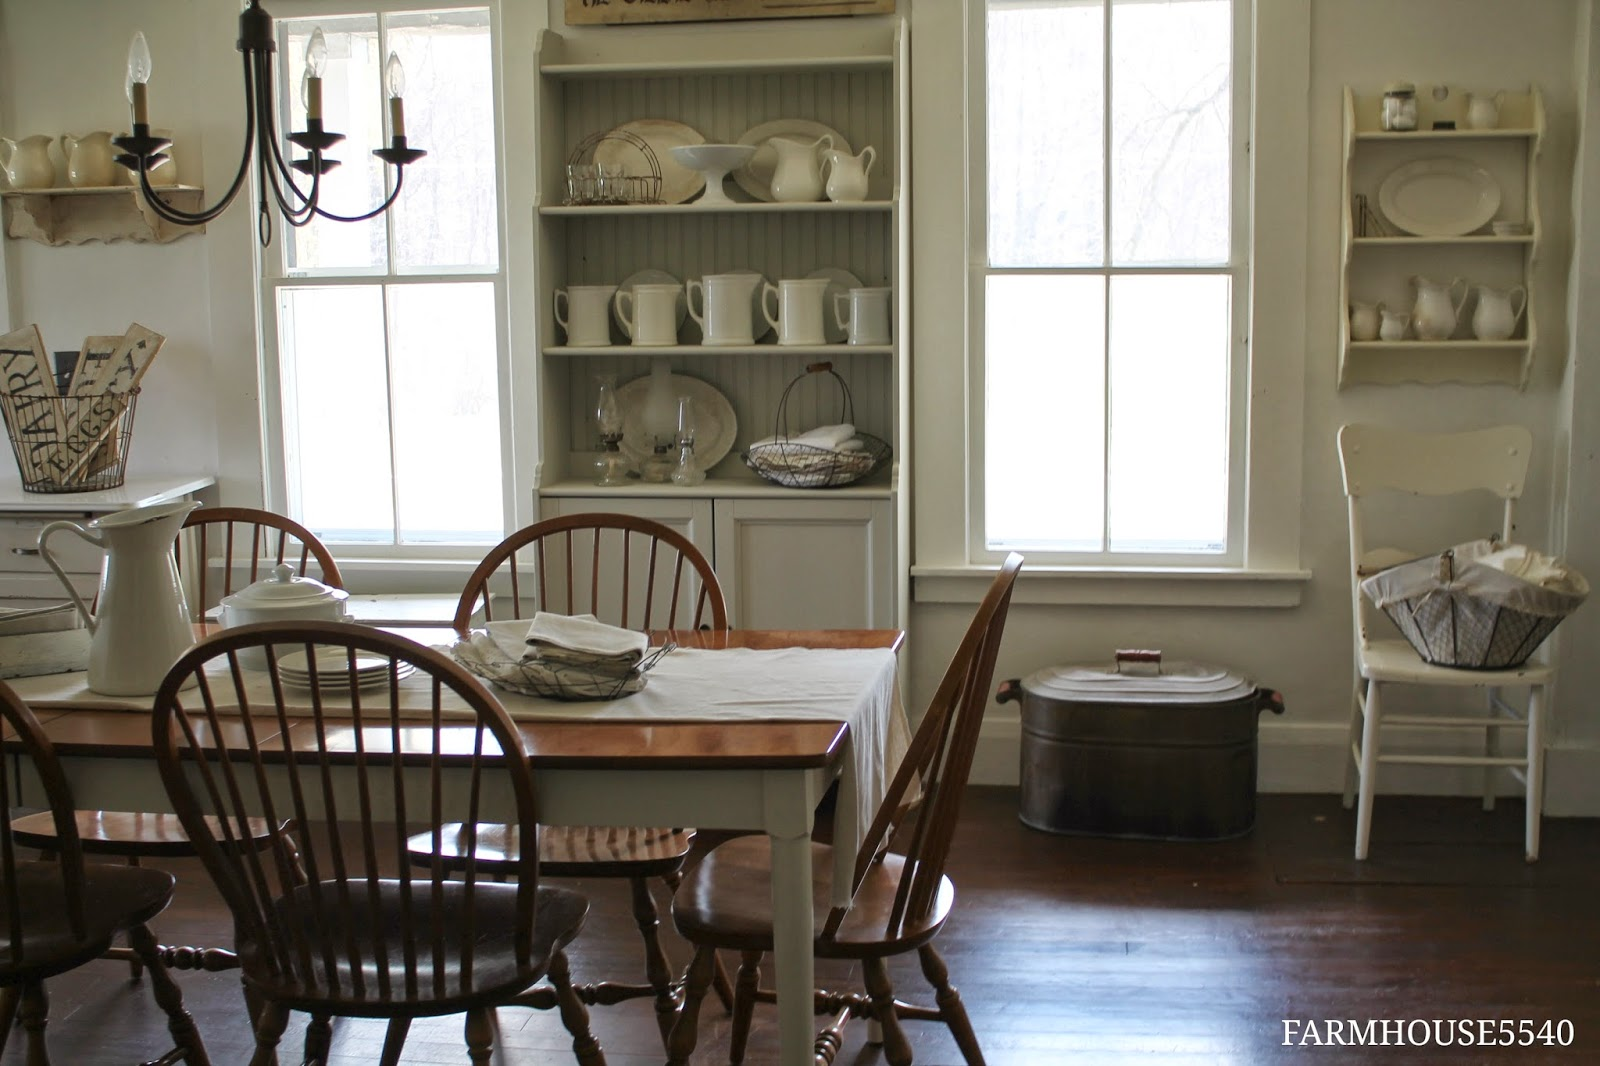 FARMHOUSE 5540 Dining Room